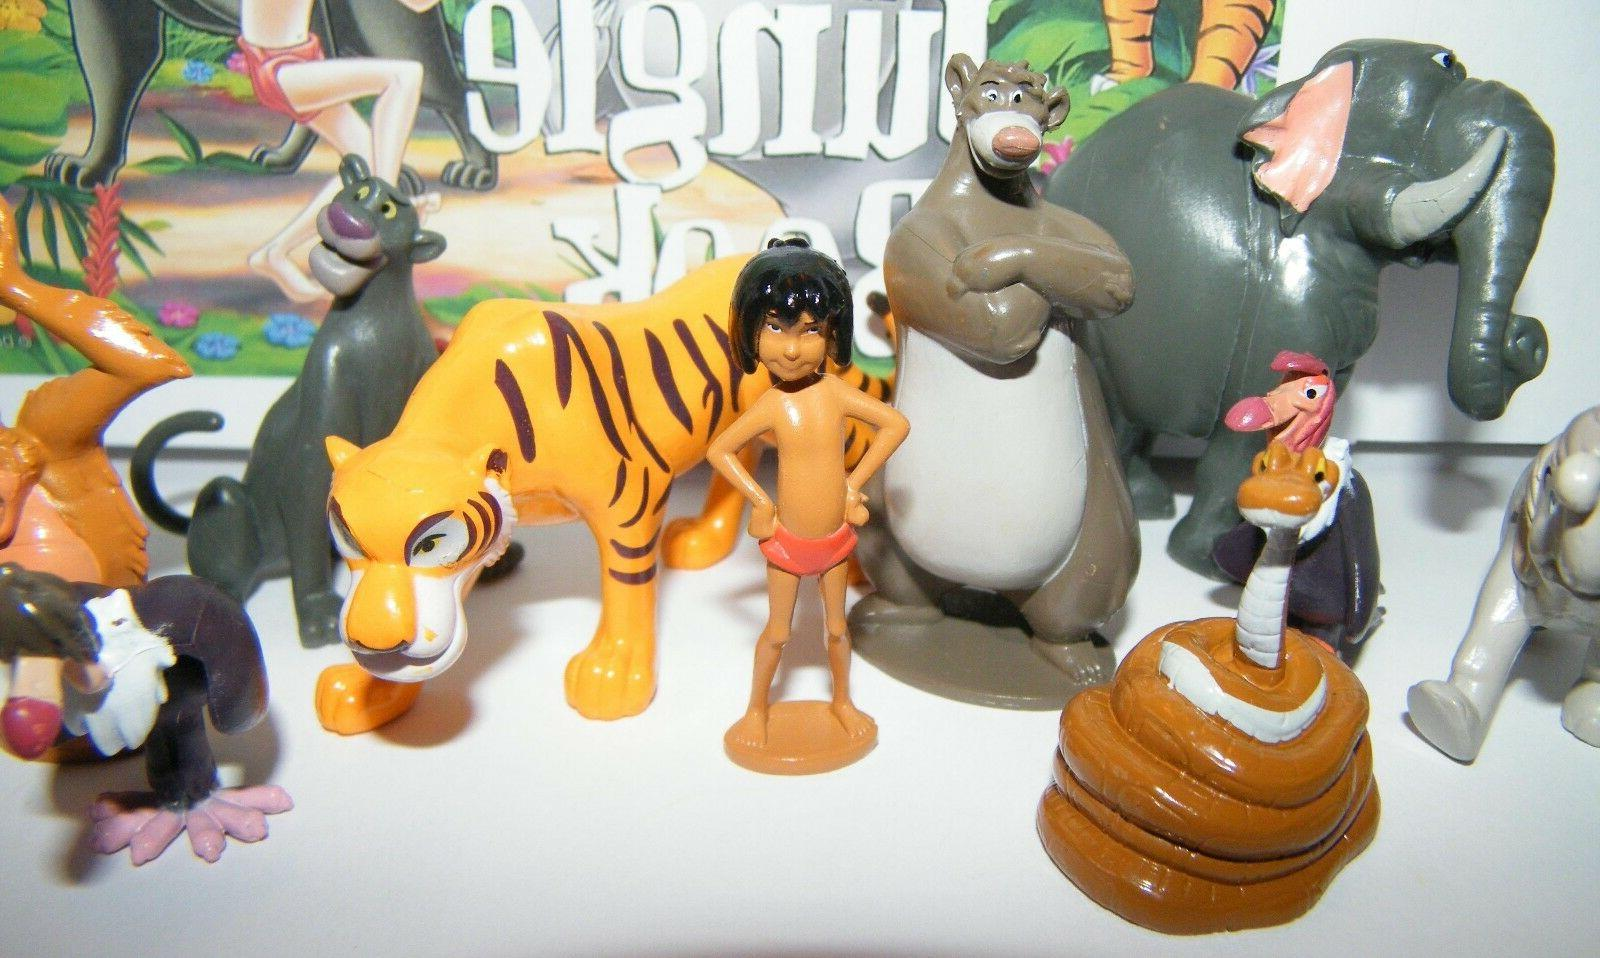 Disney The Jungle Book Party Favors with Mowgli Khan Etc